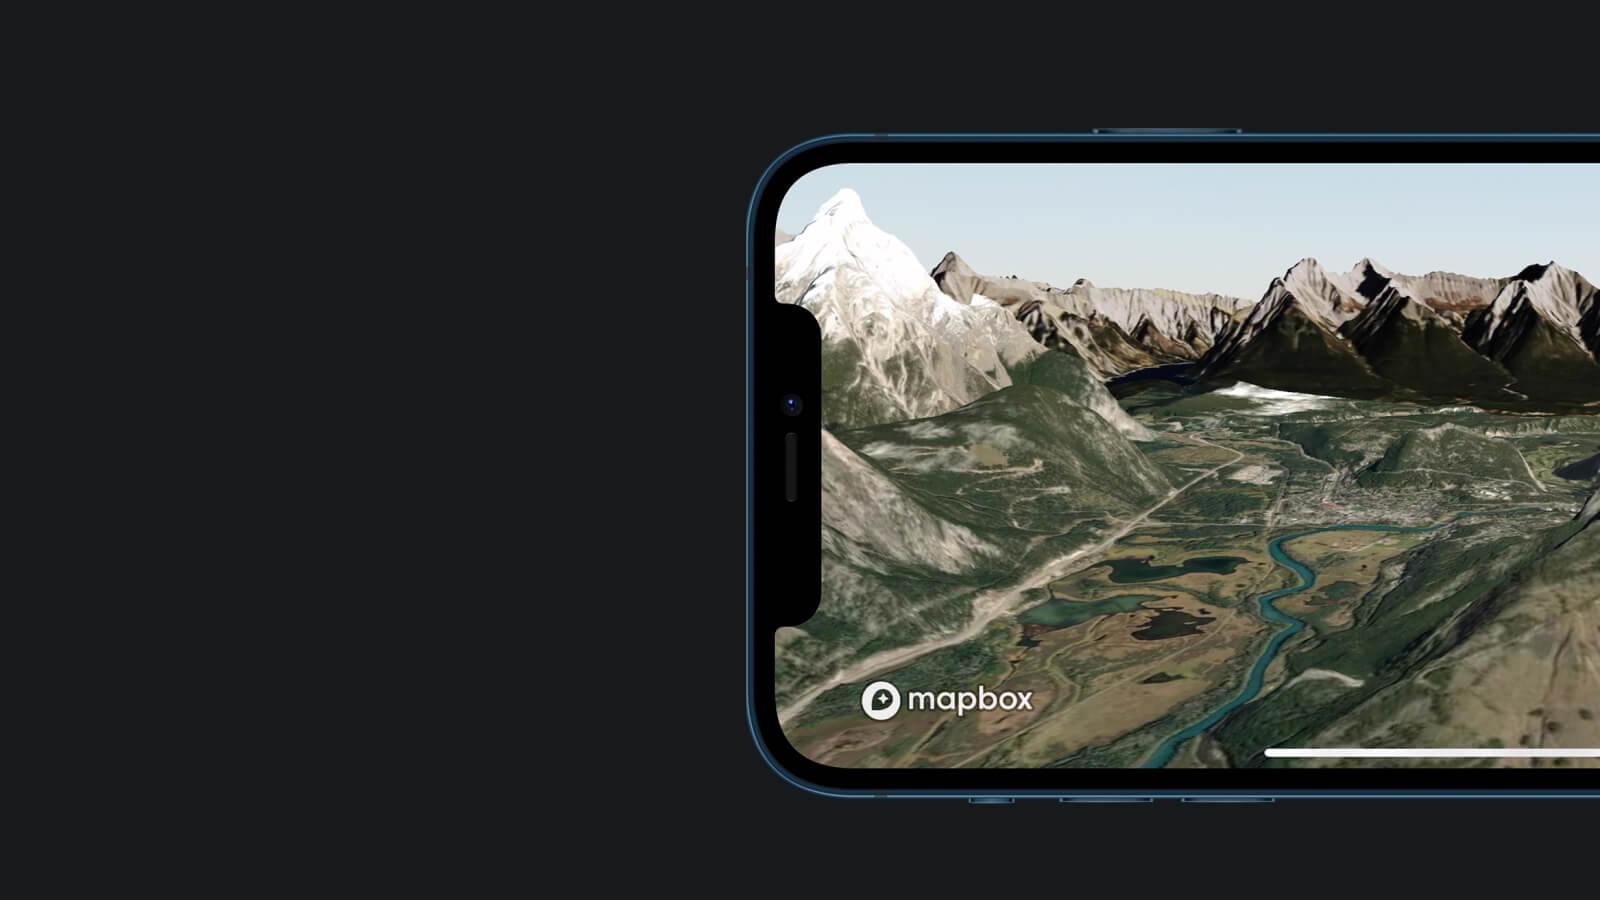 An iphone with Mapbox mobile 3D maps on its screen.